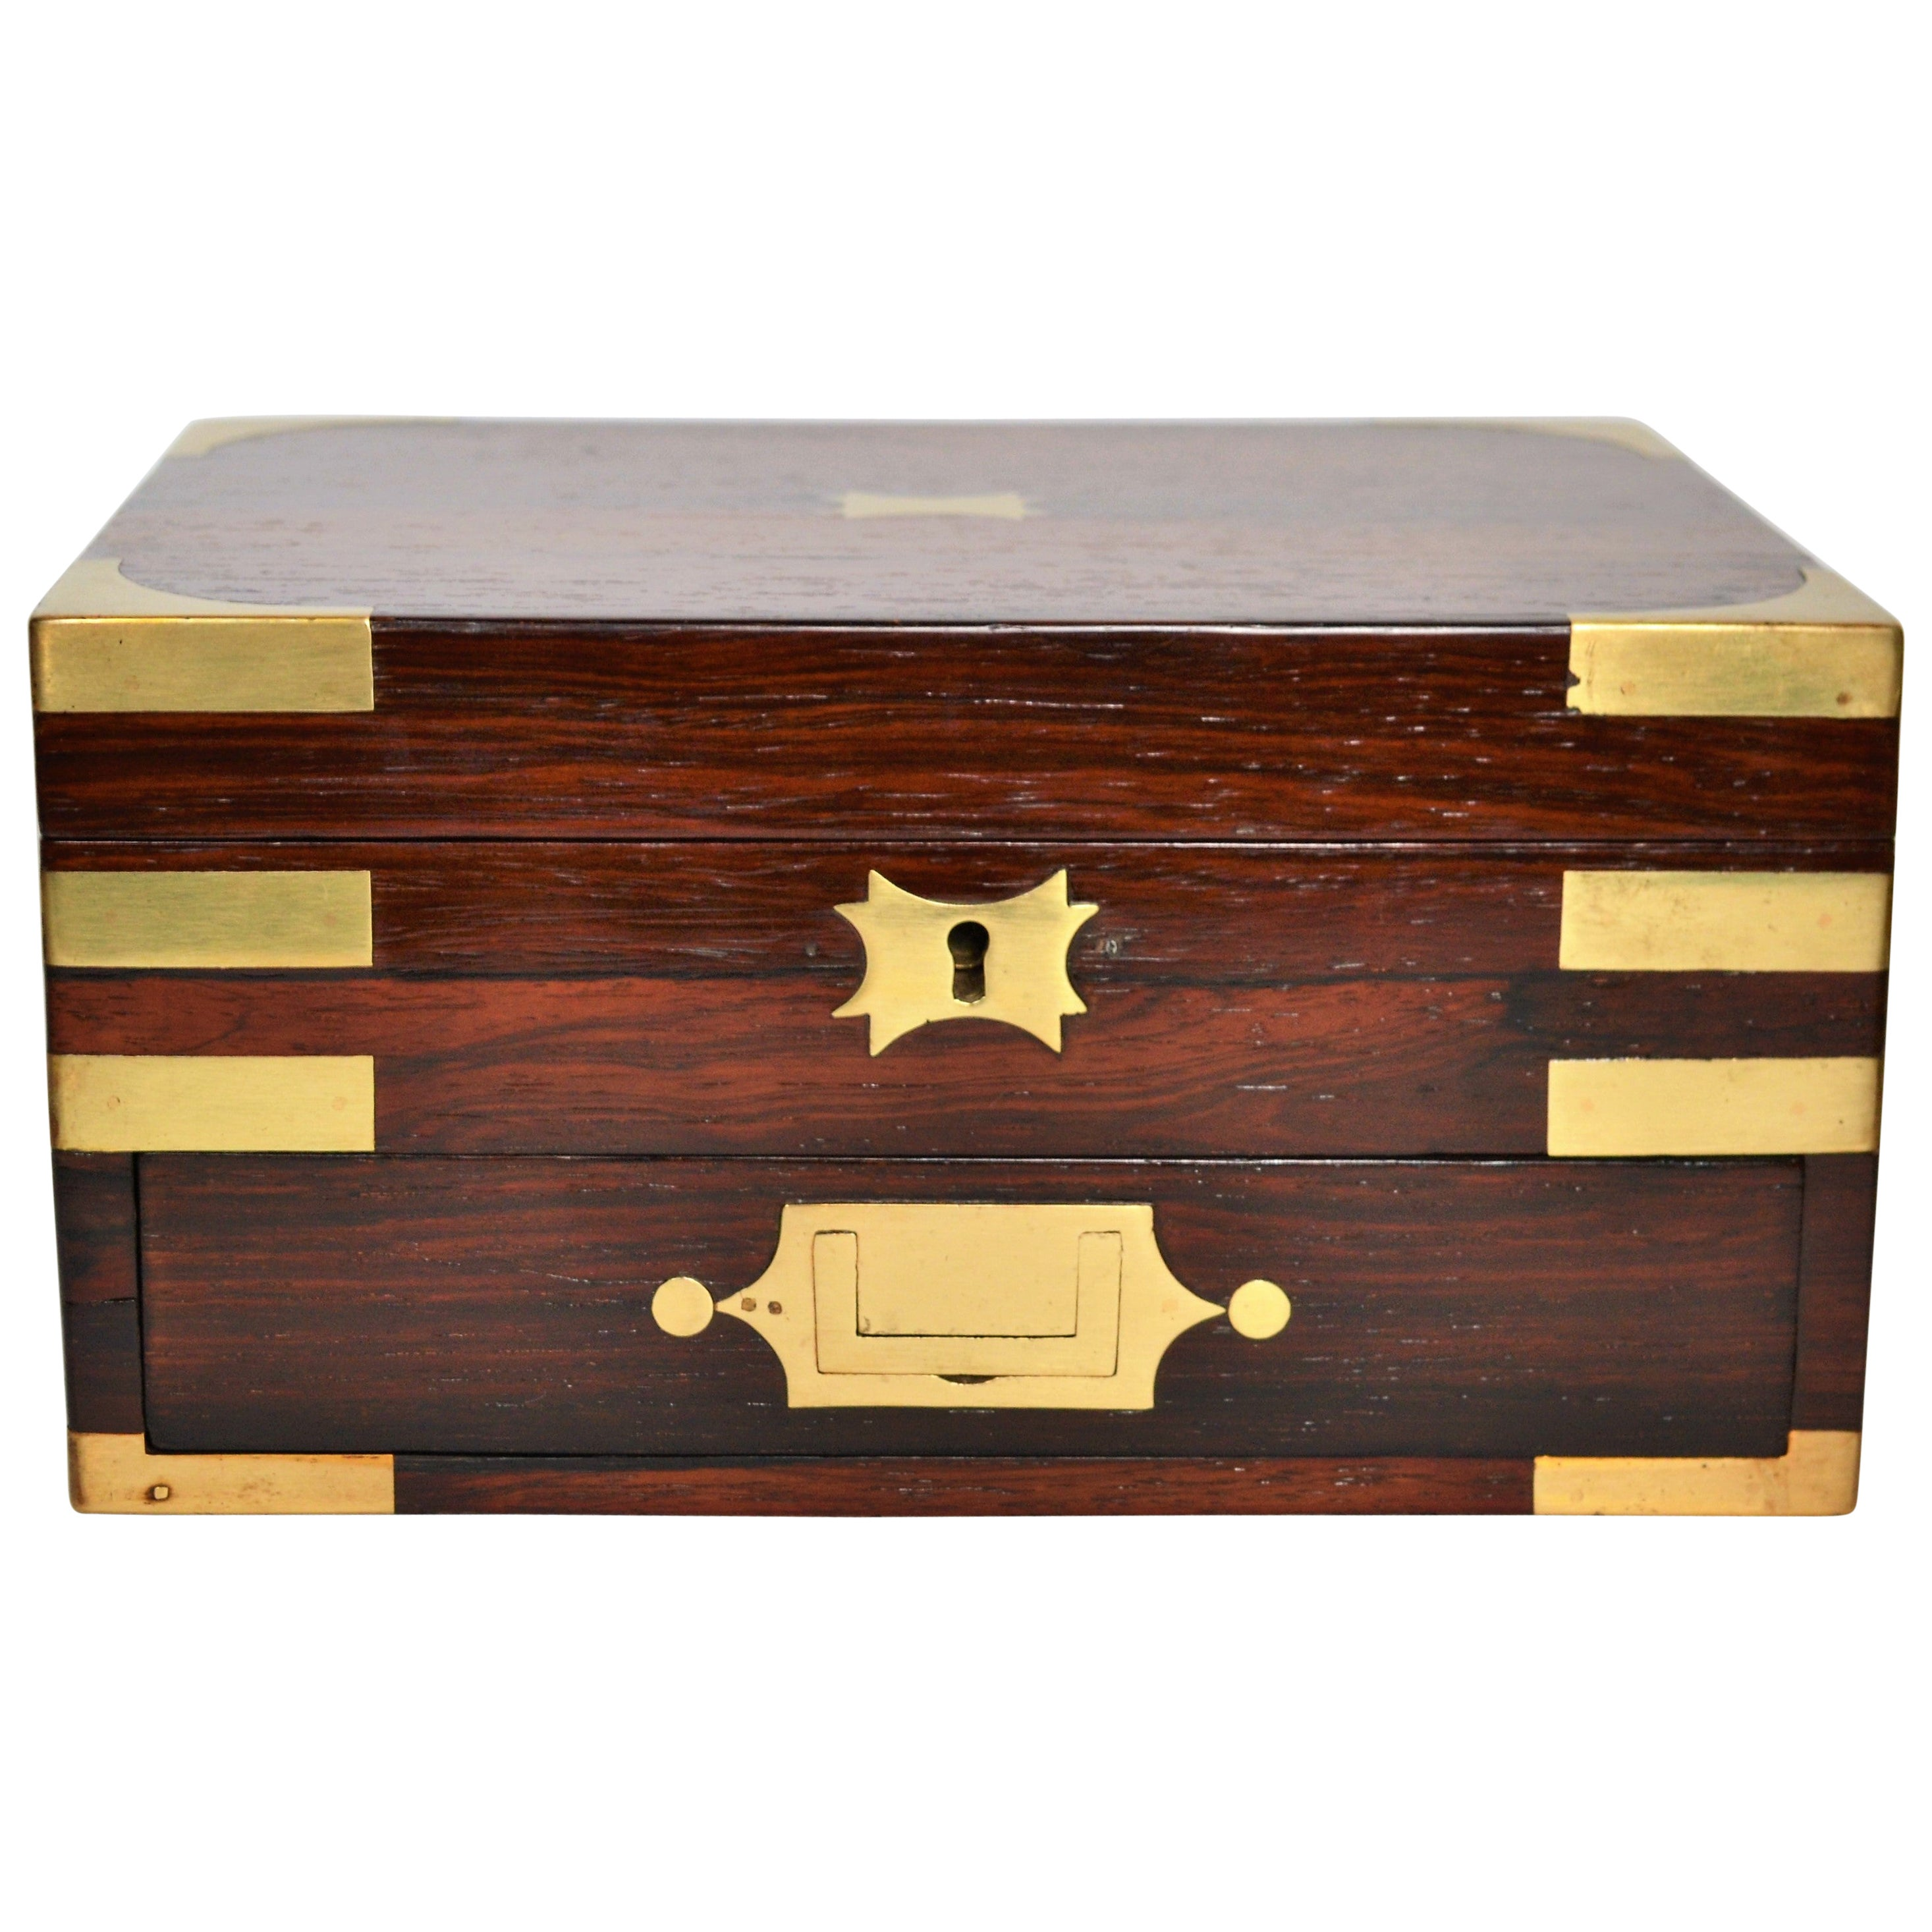 Antique English Rosewood Jewel Box, circa 1860